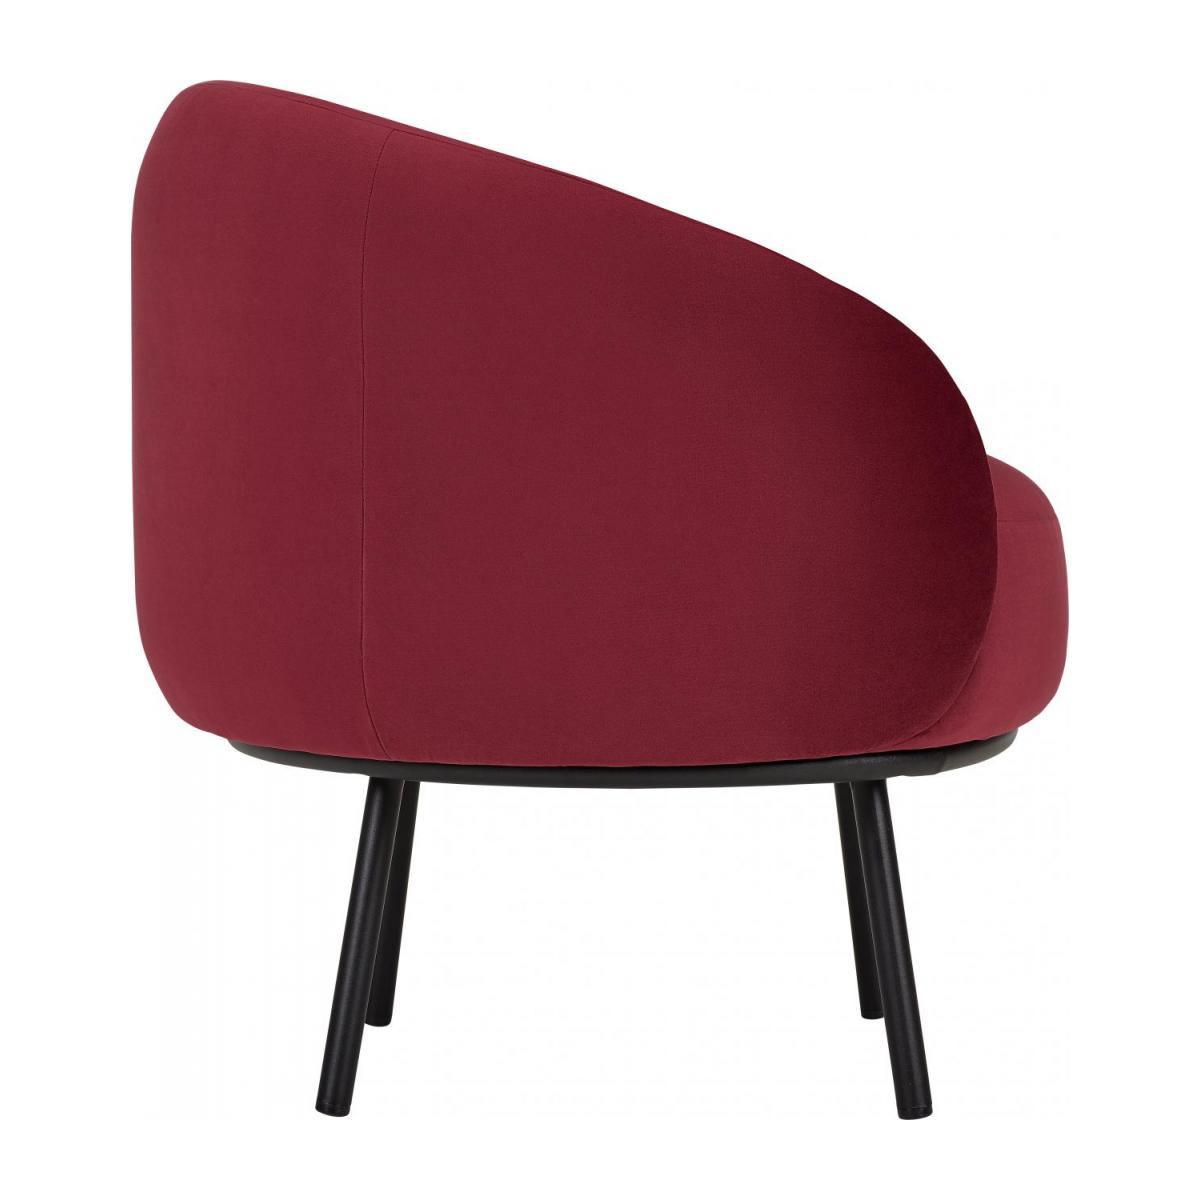 Fauteuil en velours - Lie-de-vin  - Design by Adrien Carvès n°5